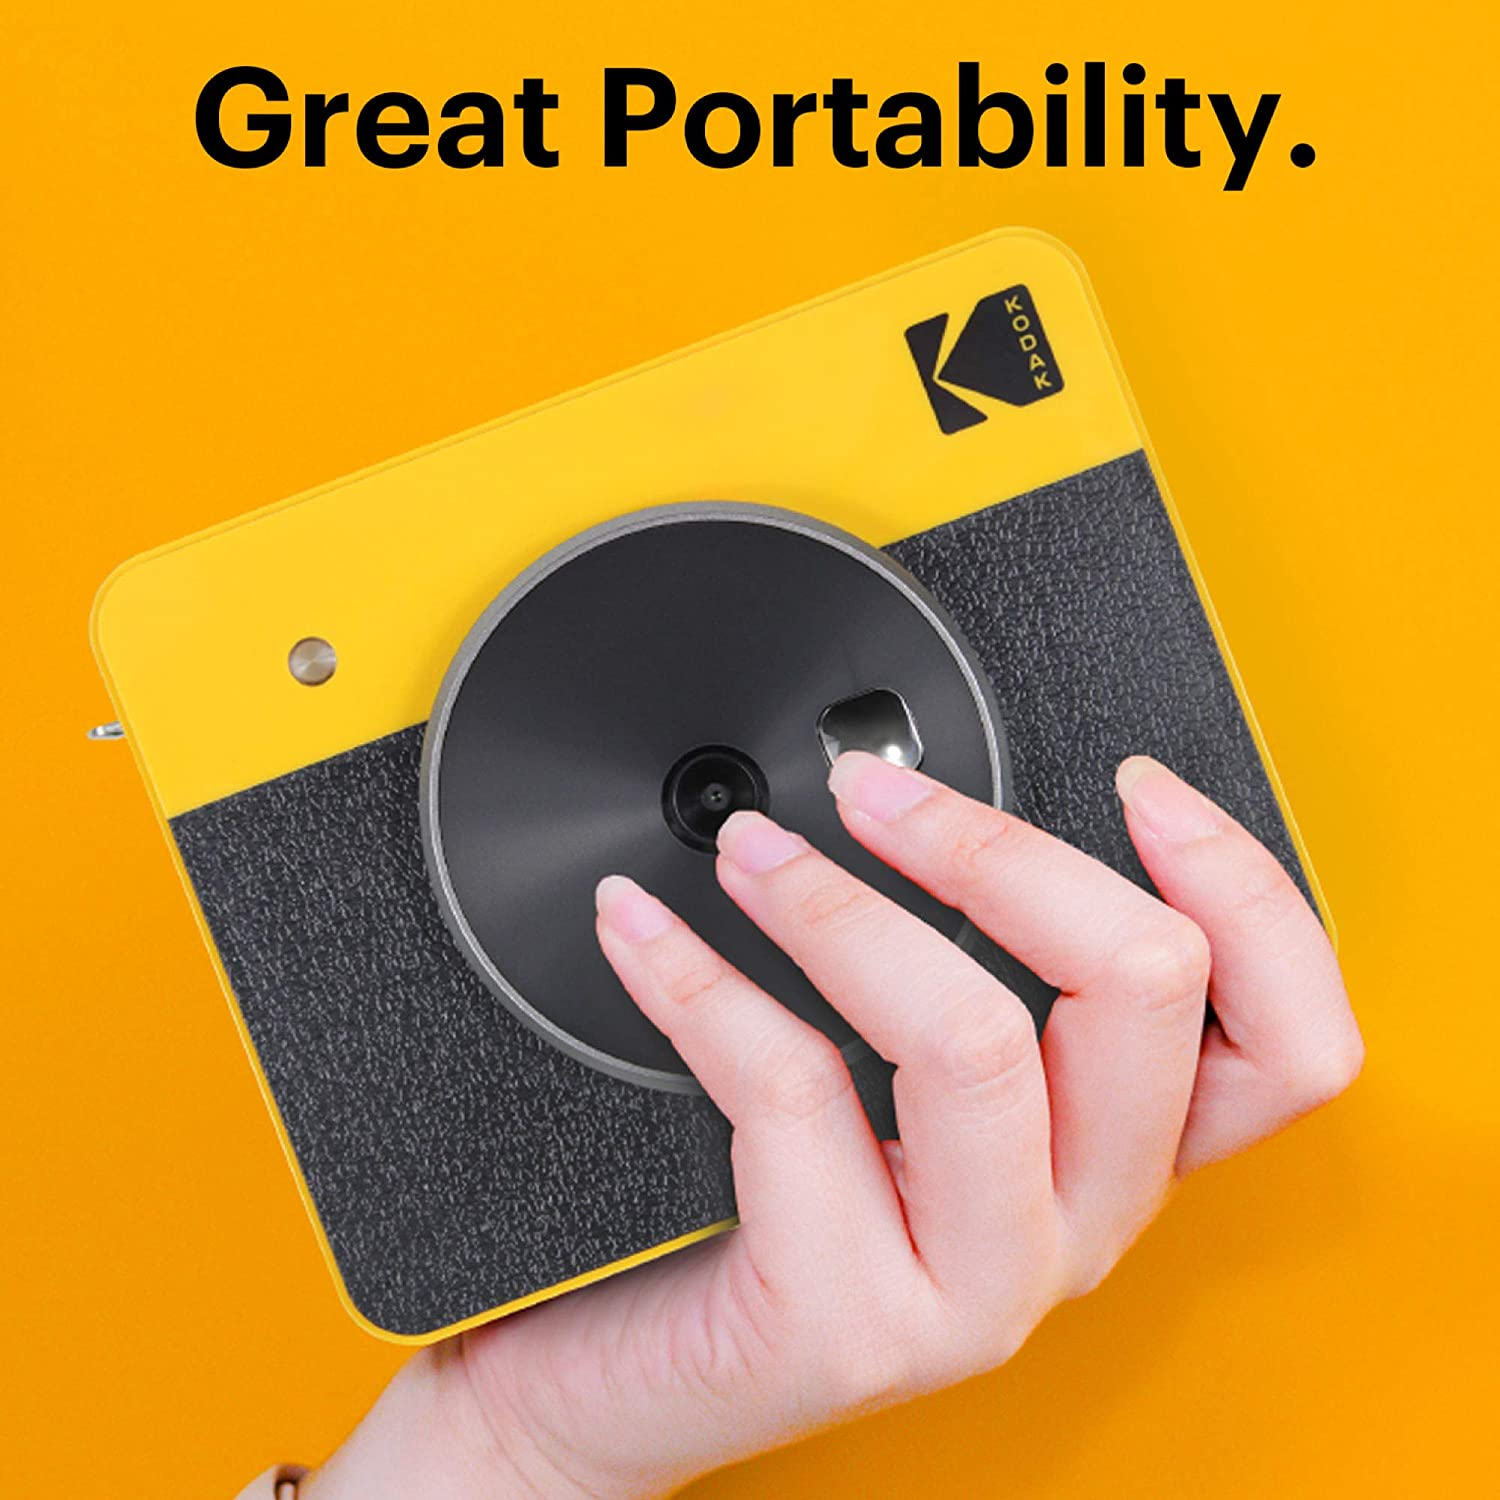 2-in-1 Printer Compatible with iOS /& Android 4PASS Technology -White Bluetooth Connection 3x3-inch Real Photo Printer Portable Instant Camera and Photo Printer Kodak Mini Shot 3 Retro Camera